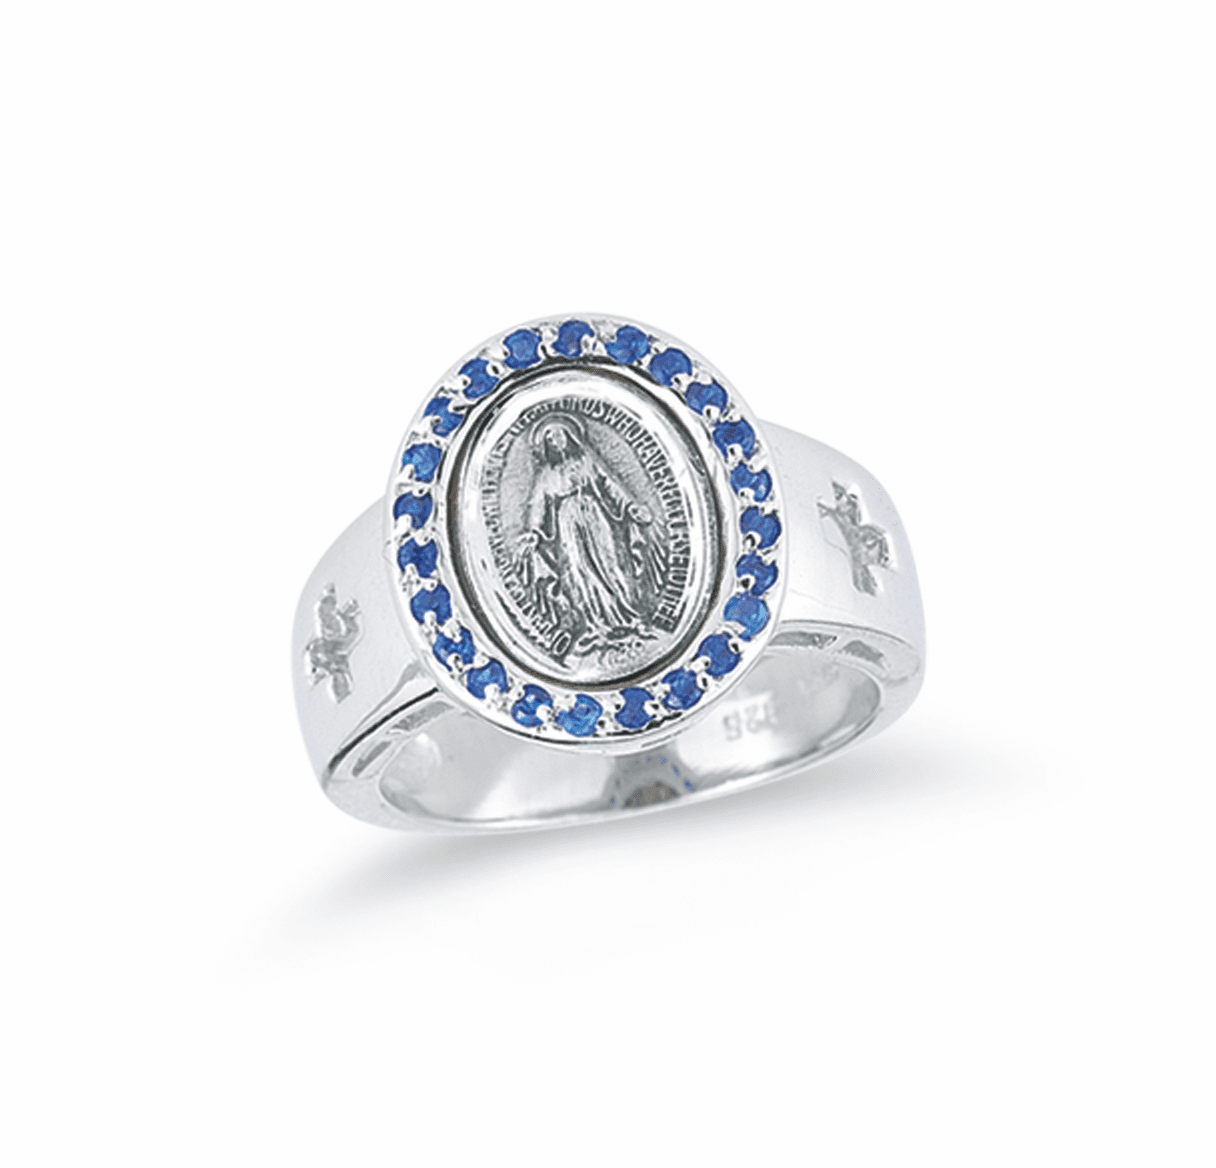 HMH Religious Sapphire Miraculous Medal Sterling Silver Ring